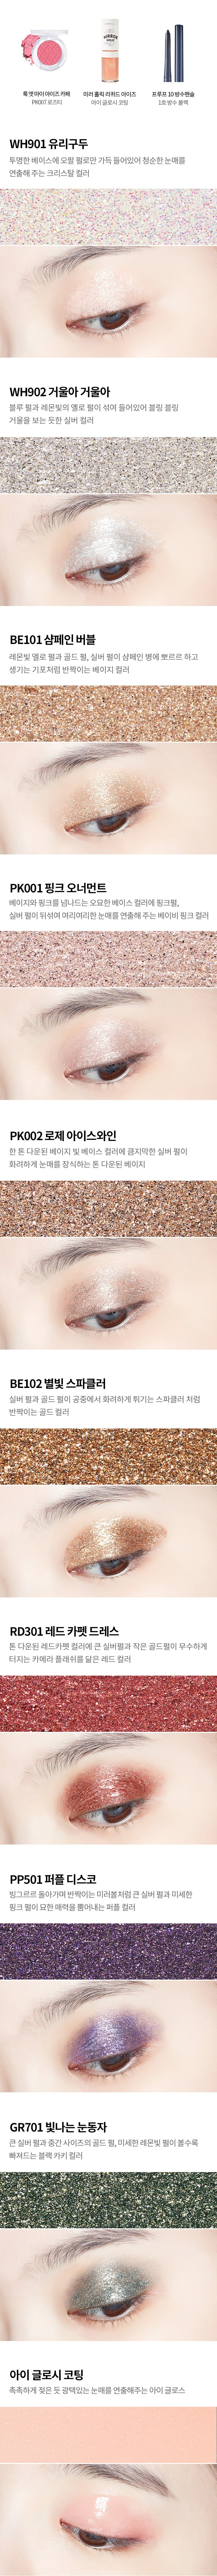 ETUDE HOUSE Mirror Holic Liquid Eyes [BE102 Starlight Sparkler]